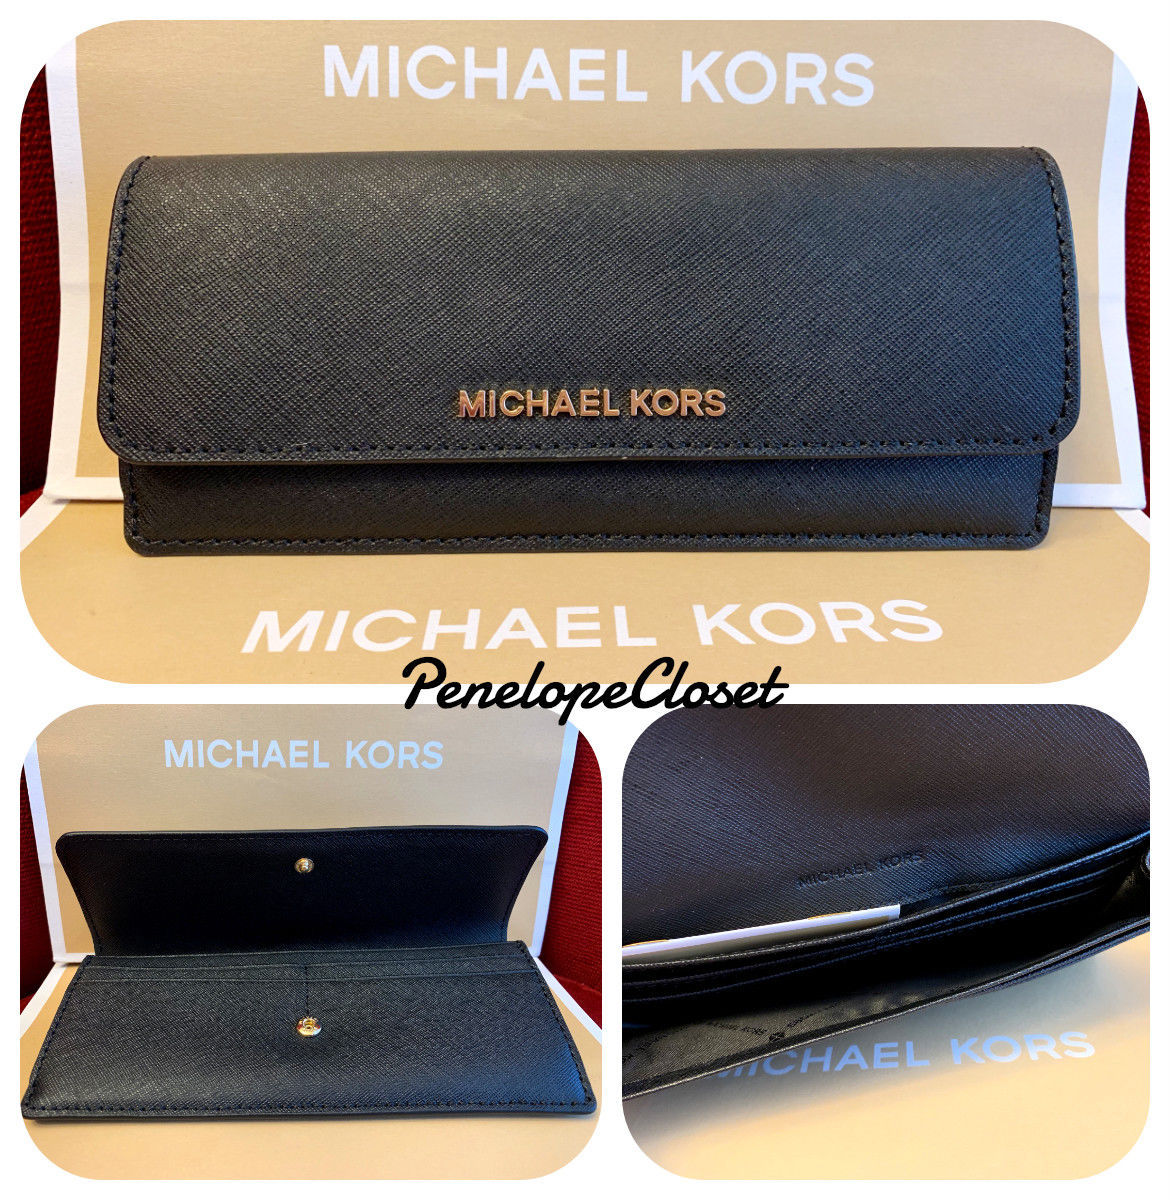 7987249a10c39 NWT MICHAEL KORS JET SET TRAVEL SAFFIANO LEATHER FLAT WALLET IN BLACK -   49.88